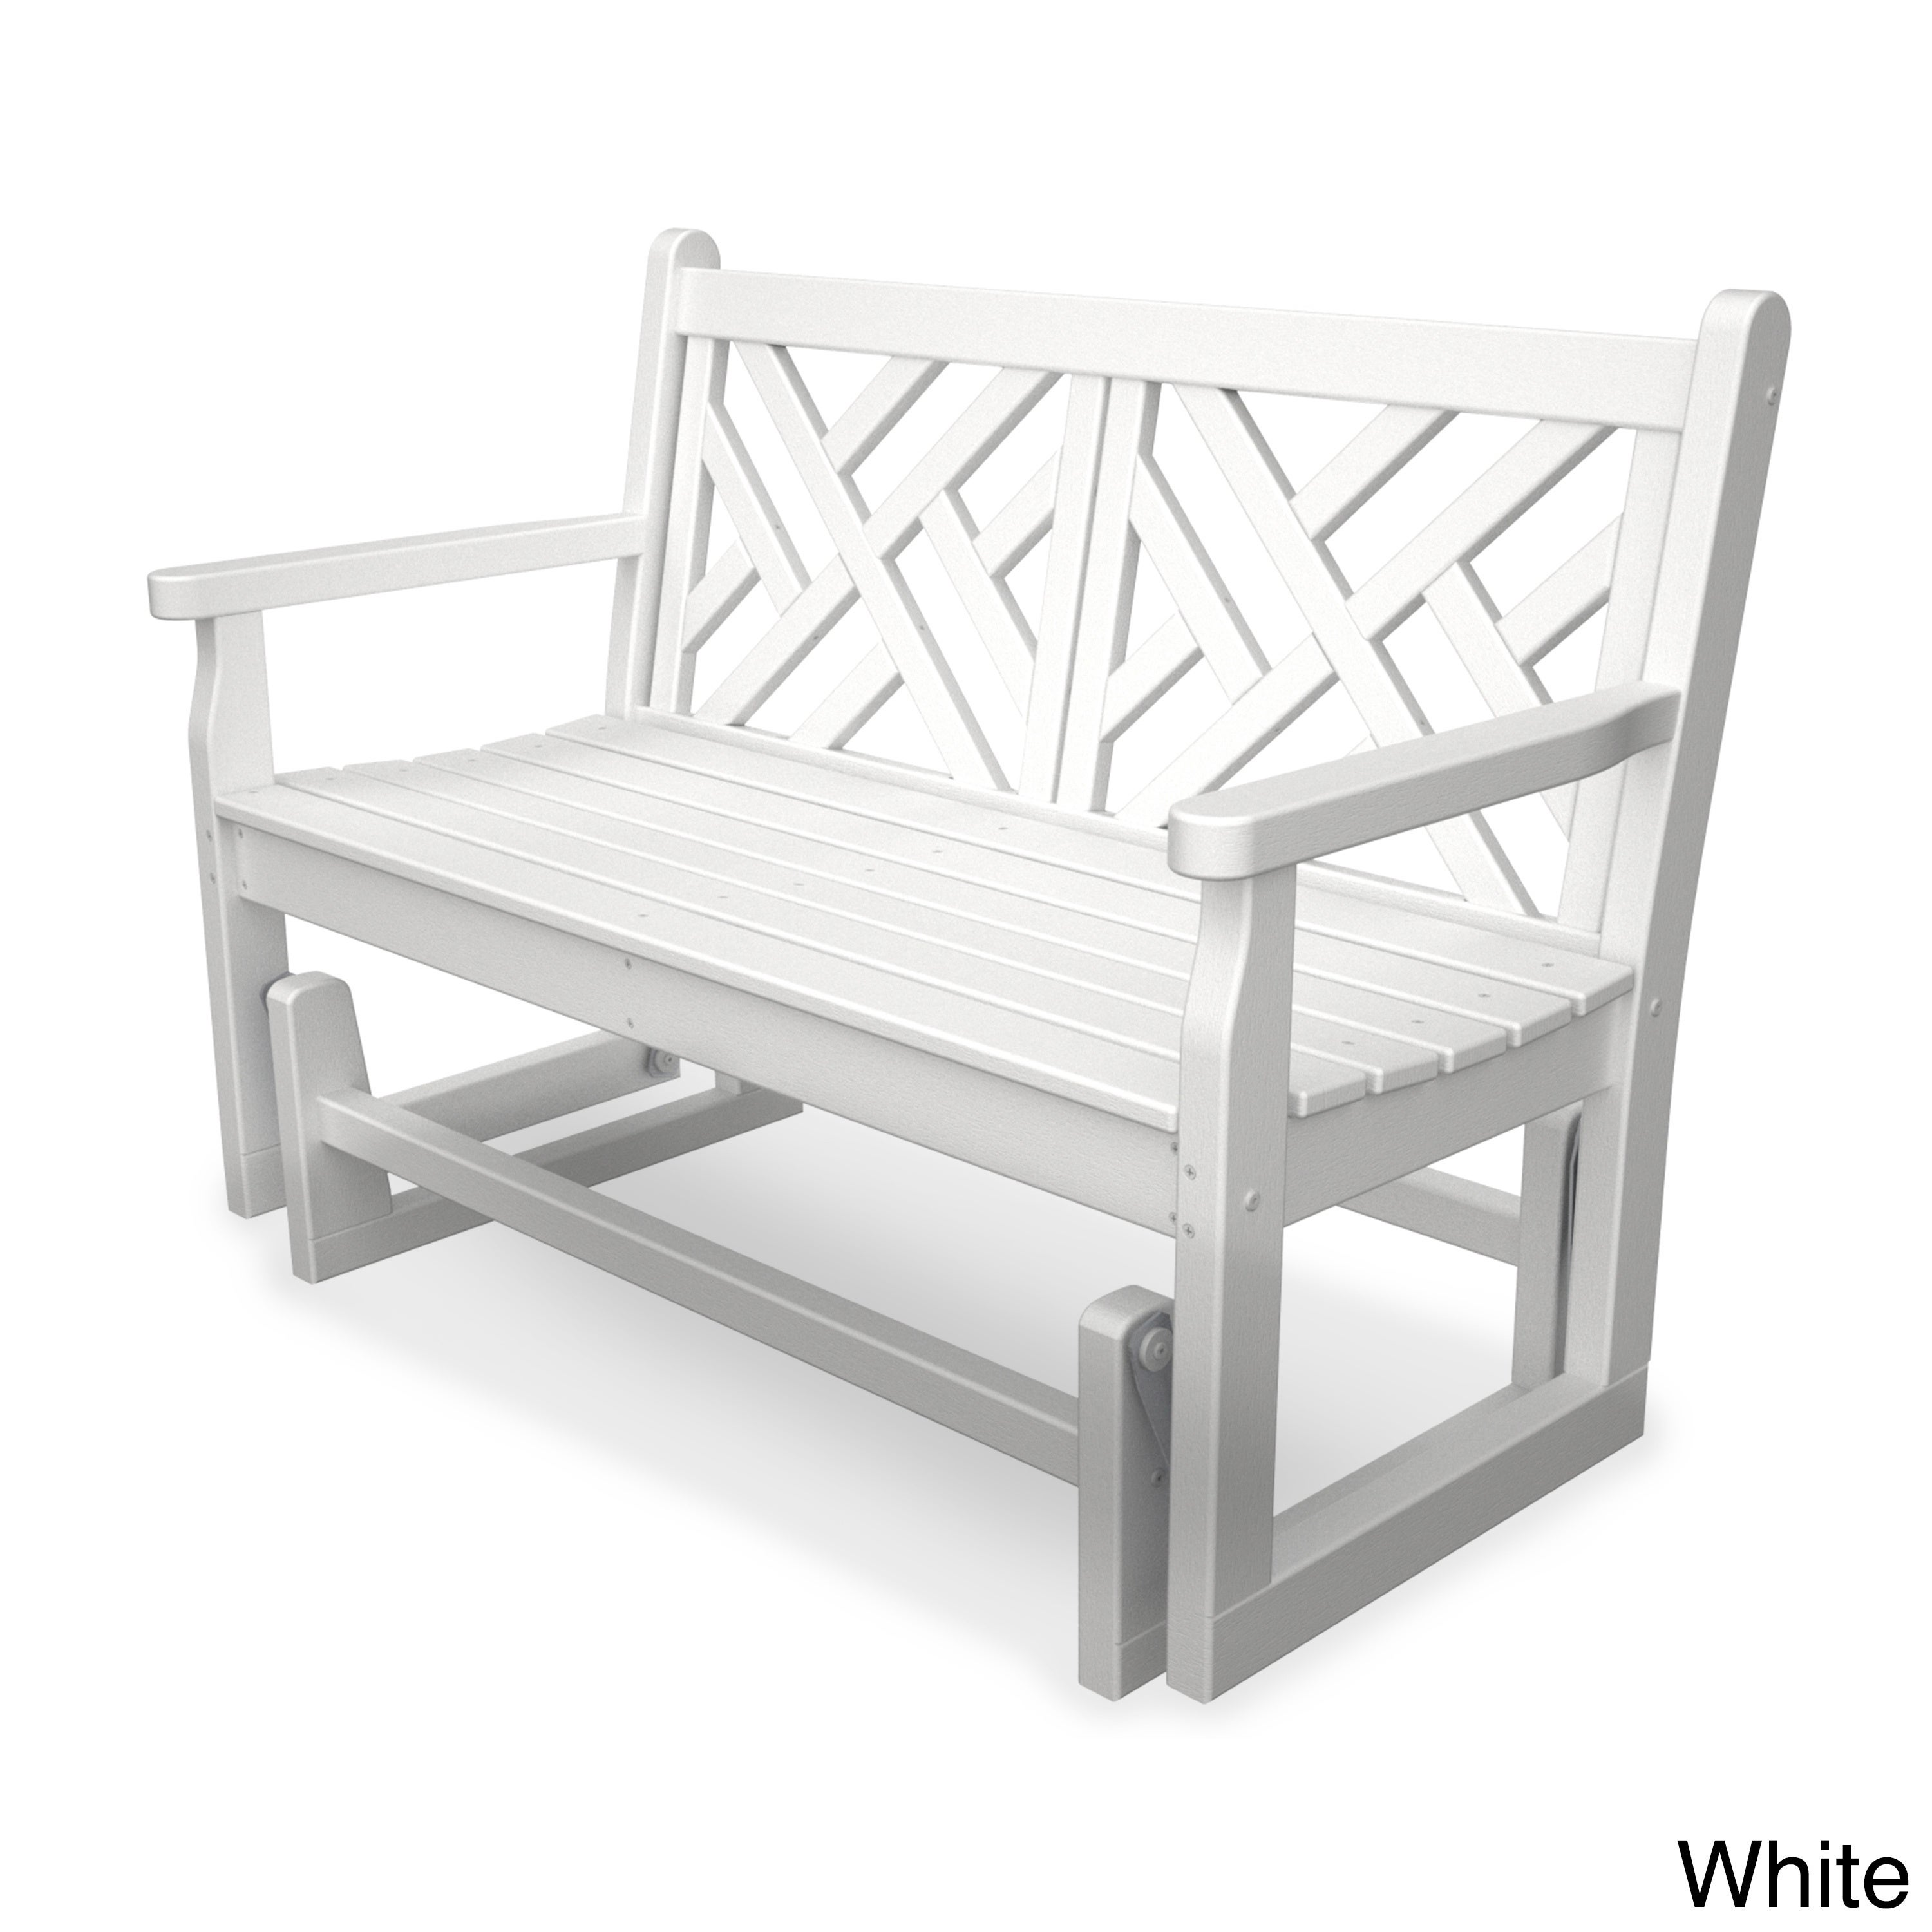 Chippendale Polywood Glider Bench (White), Patio Furnitur...